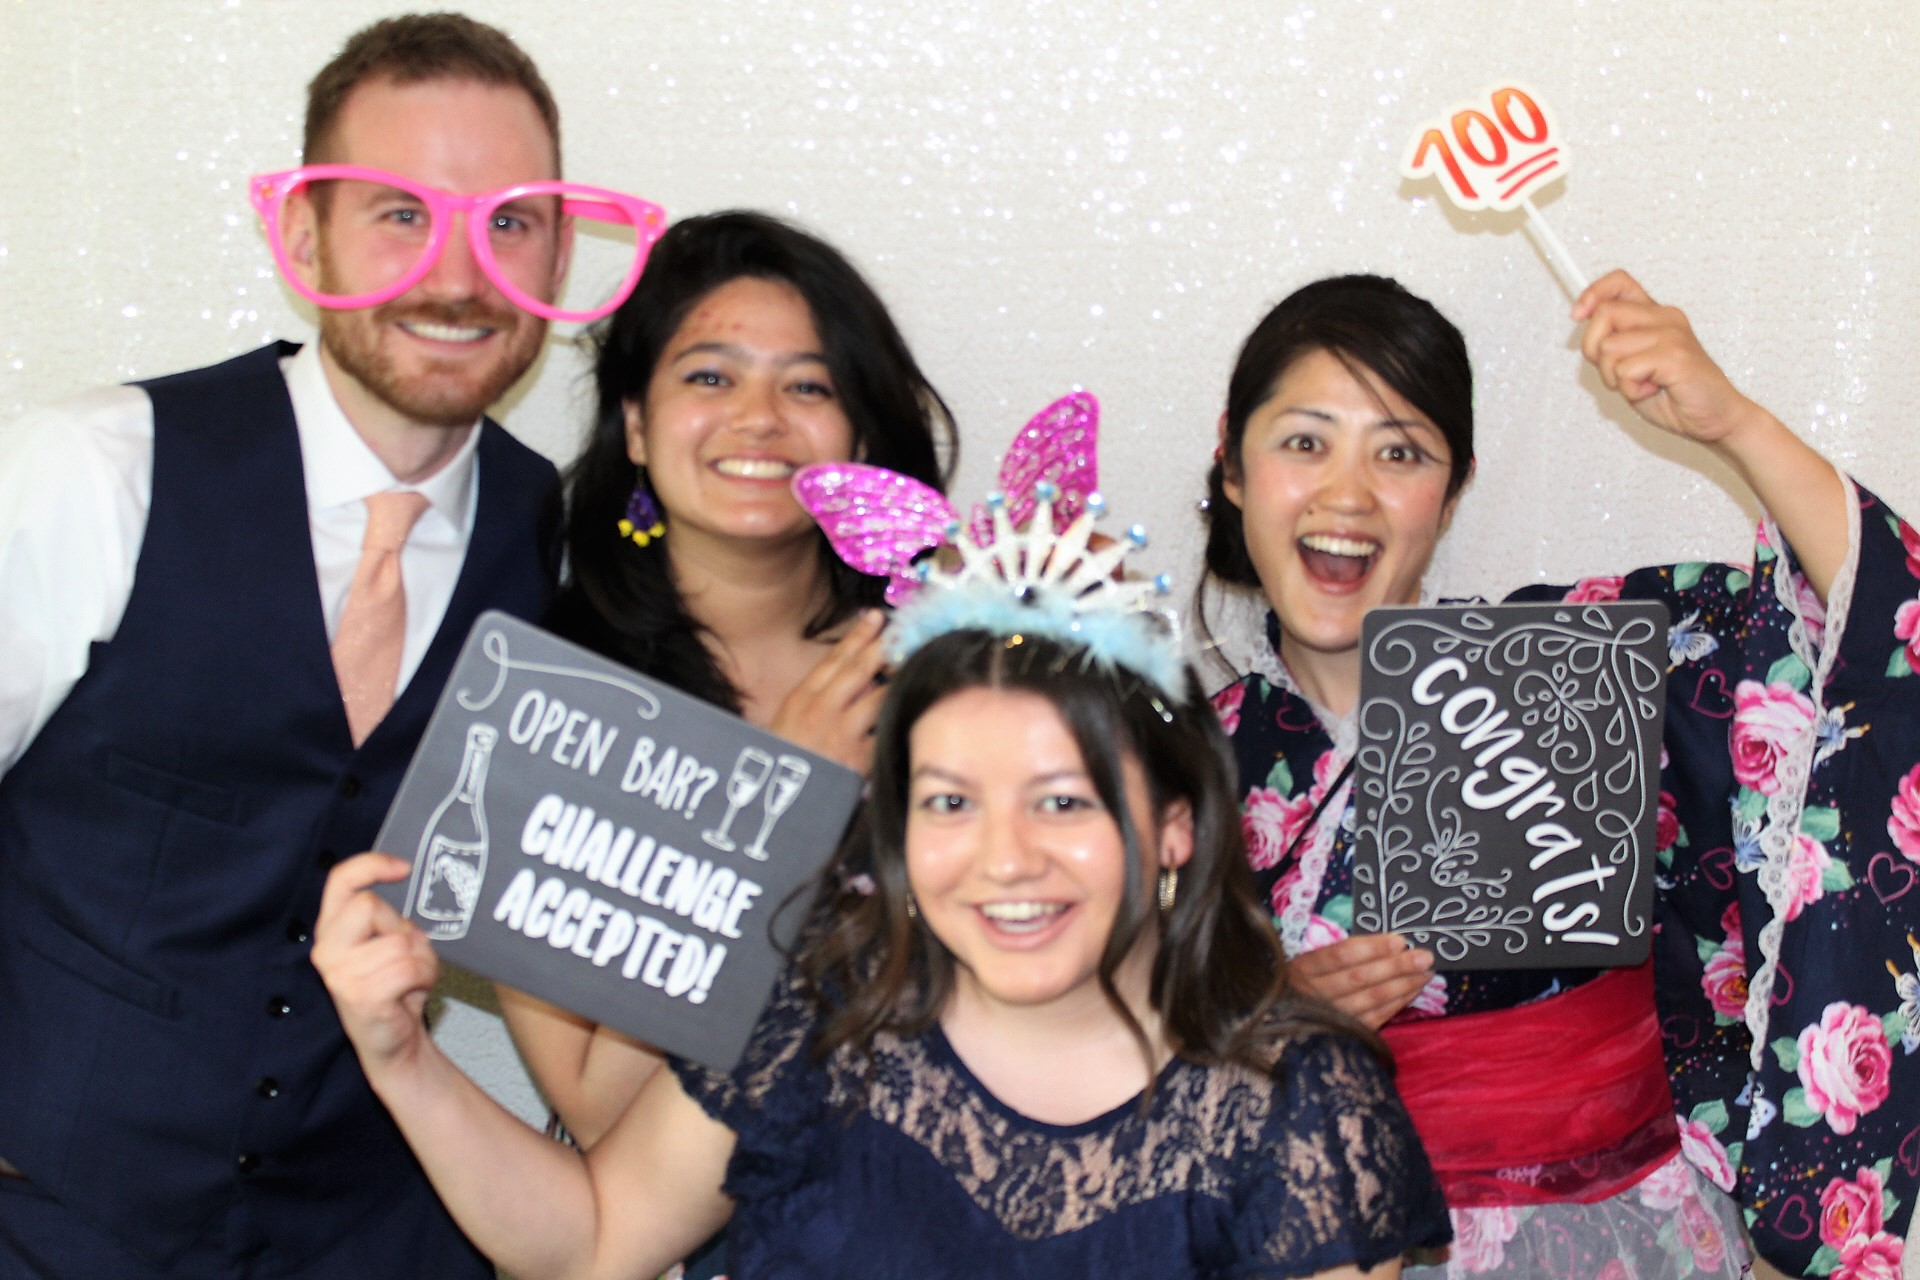 Rental Photo Booth Service